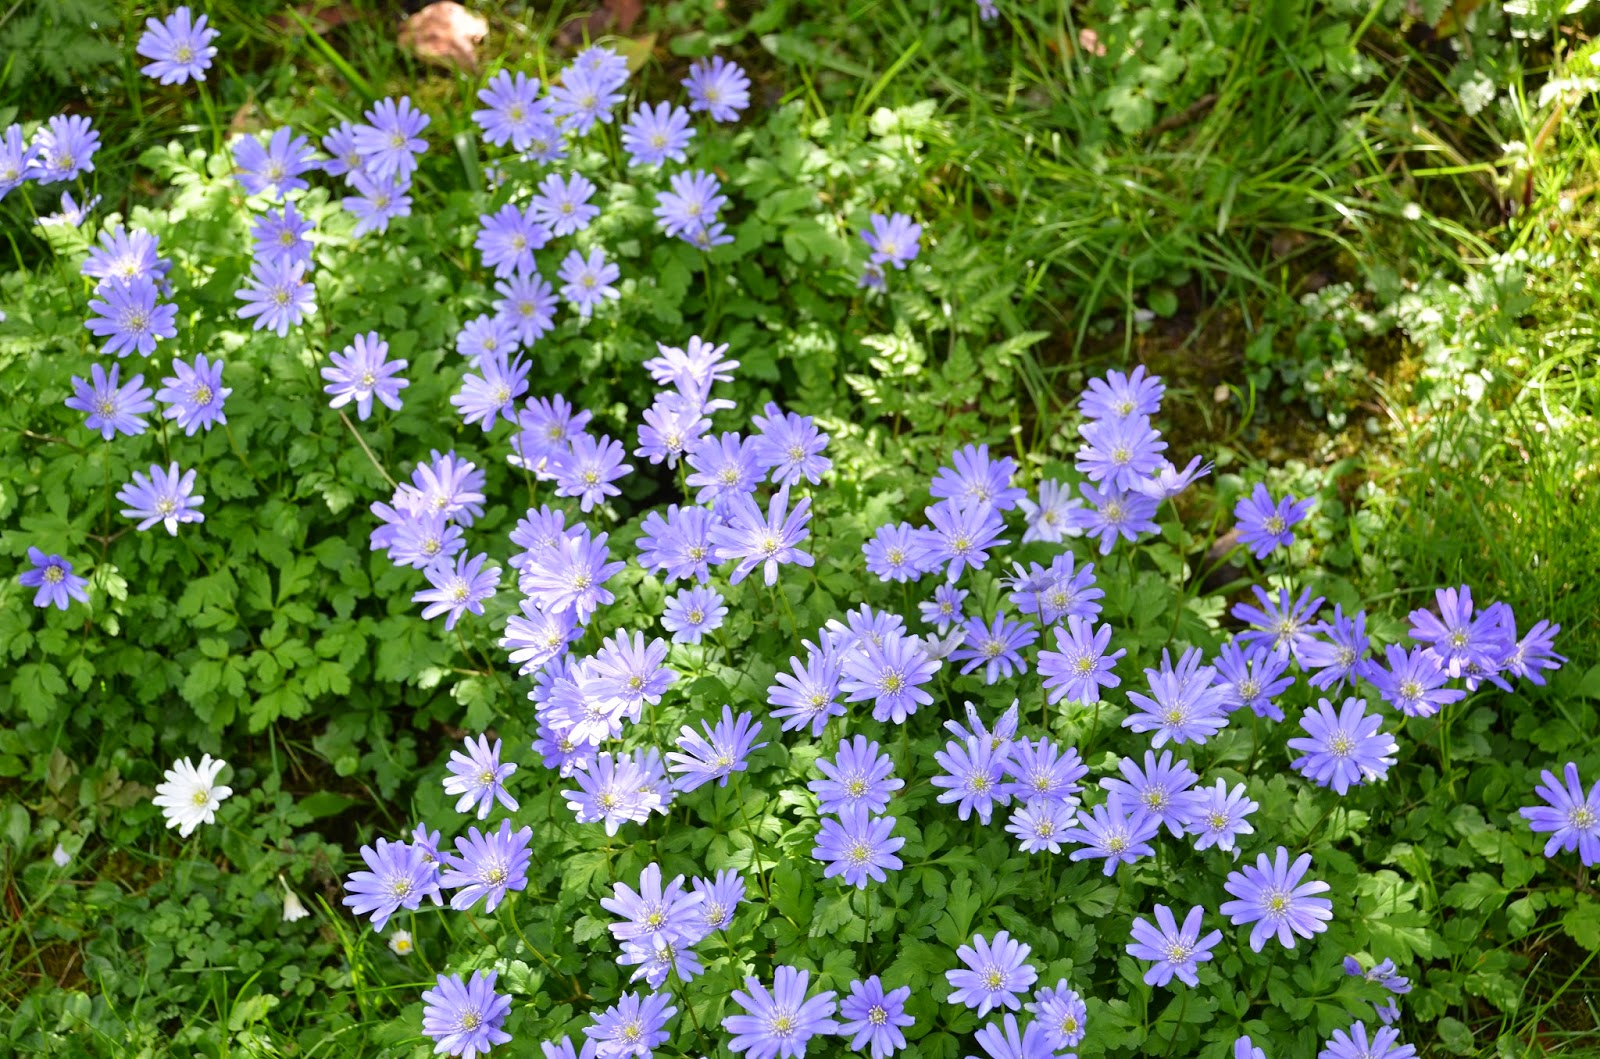 THE WINDFLOWER Anemone blanda The Garden of Eaden